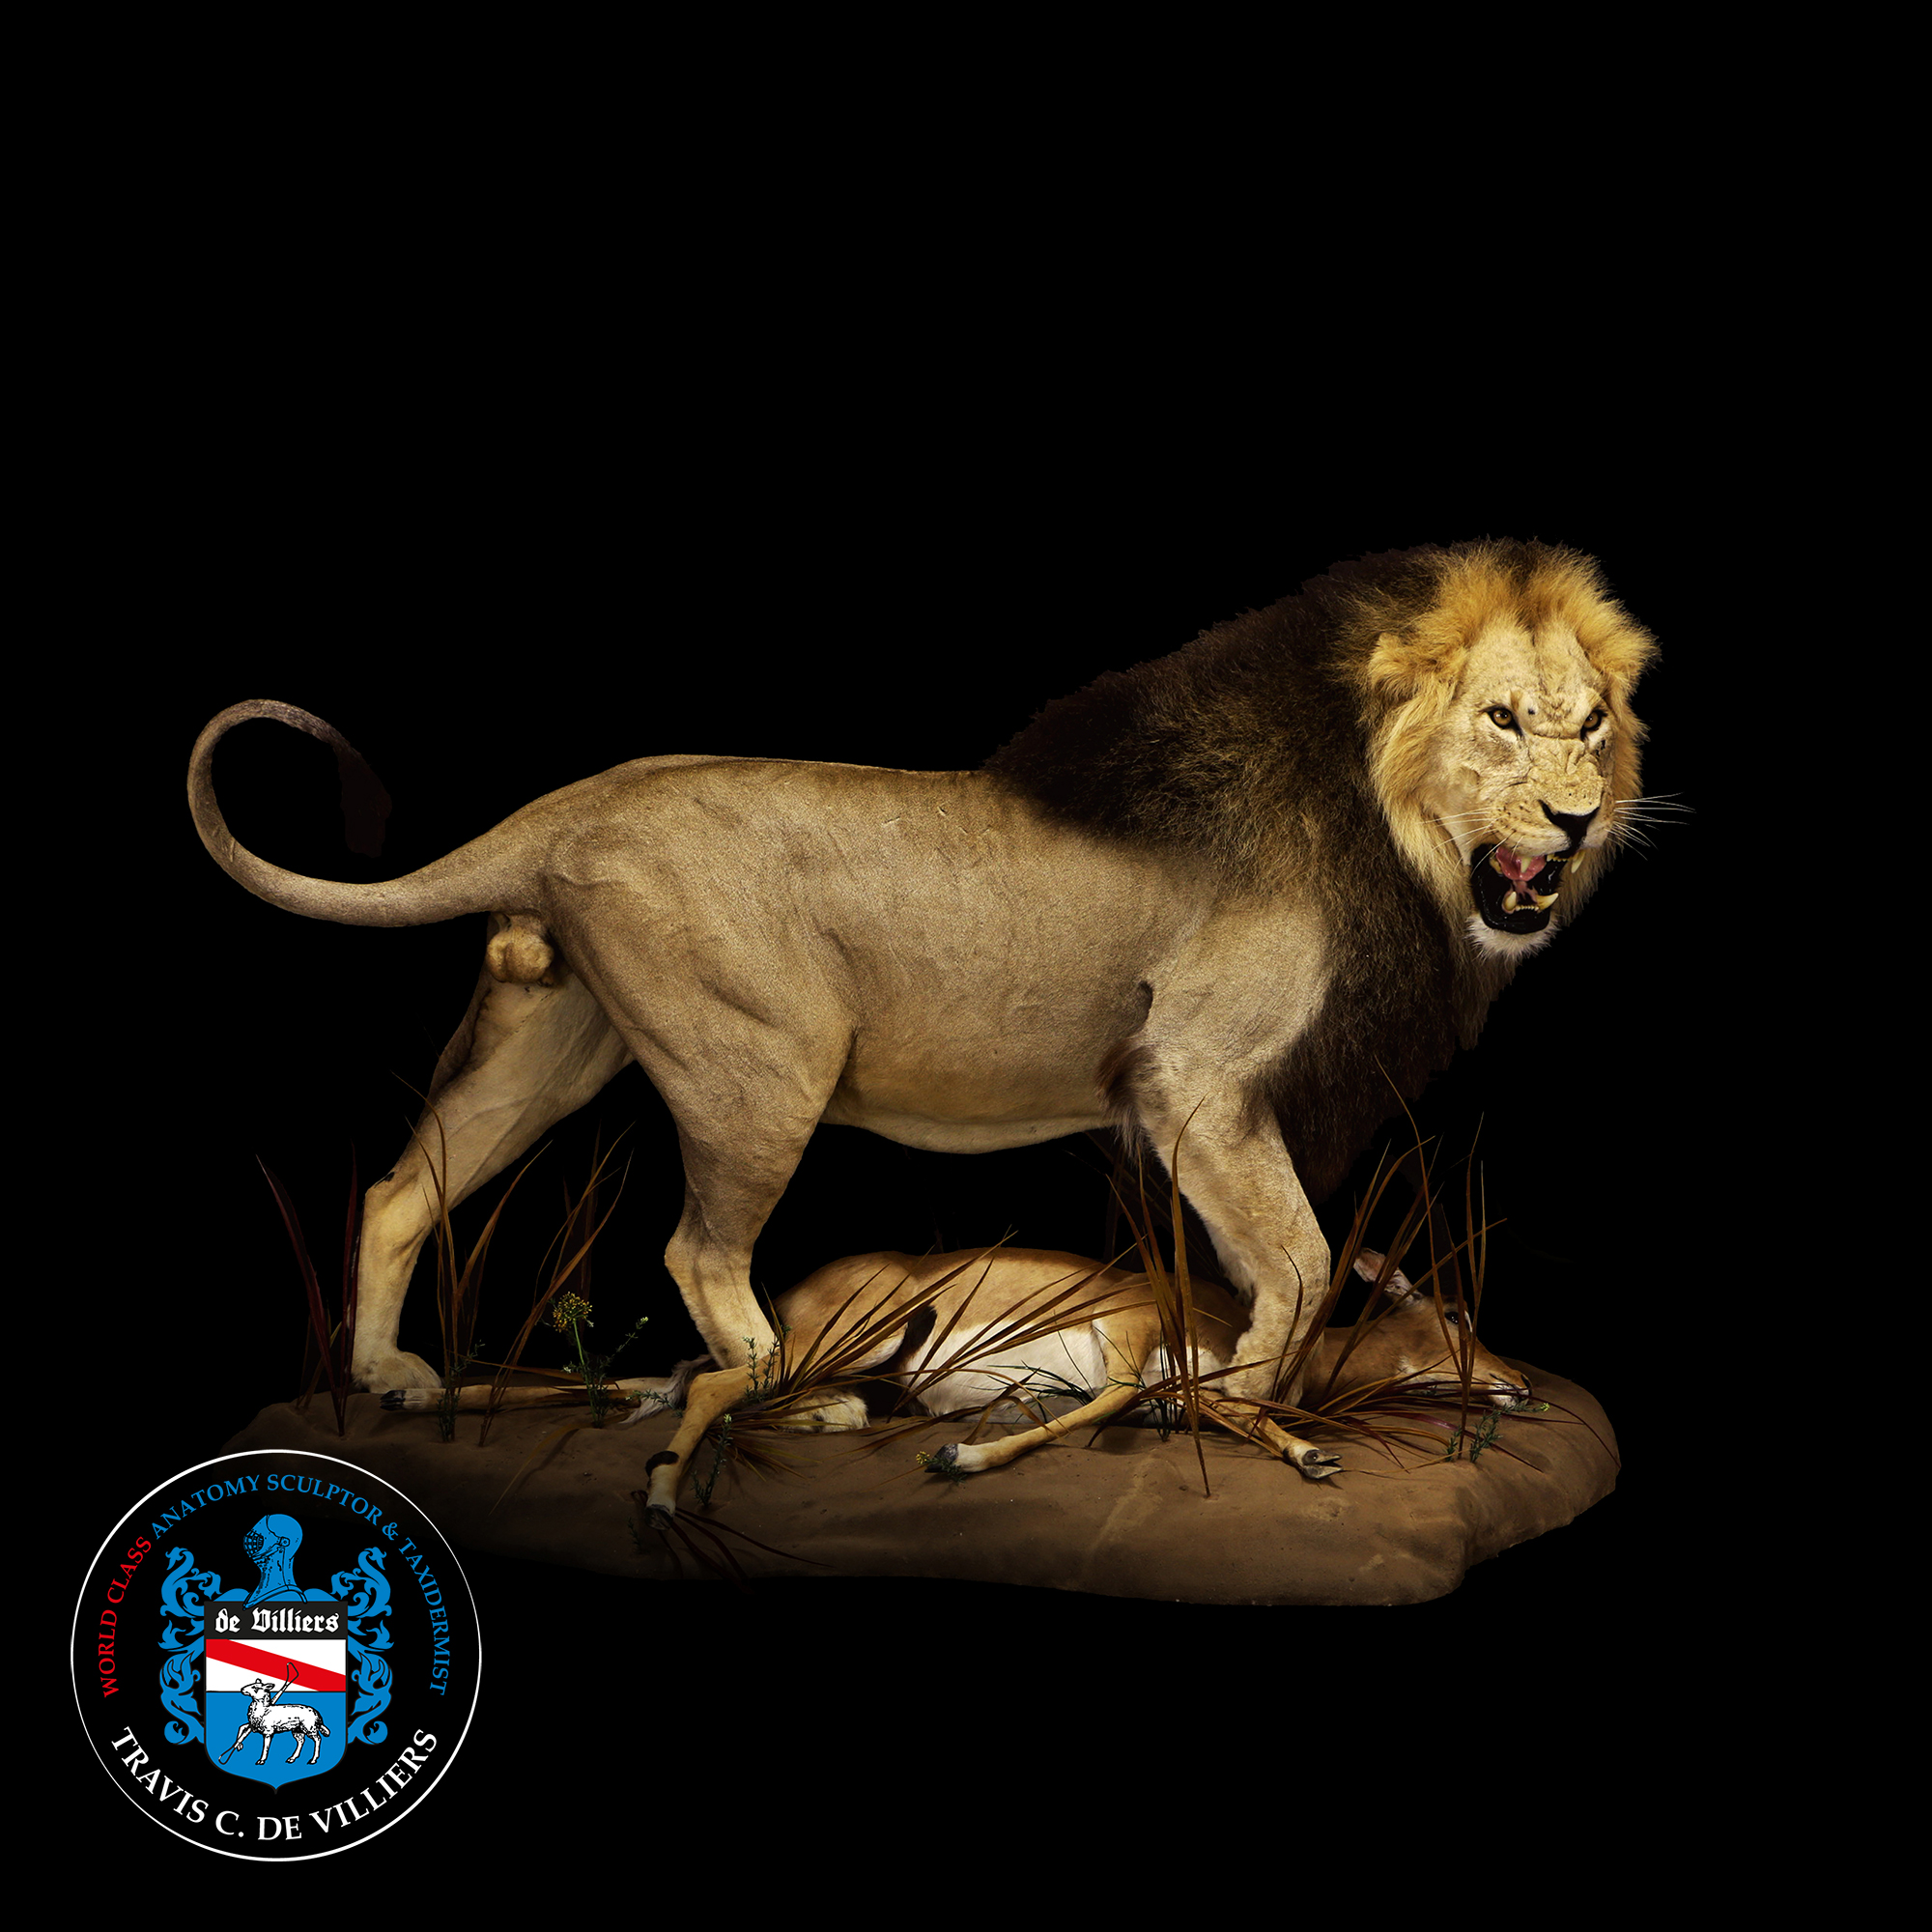 Snarling Lion - Panthera leo